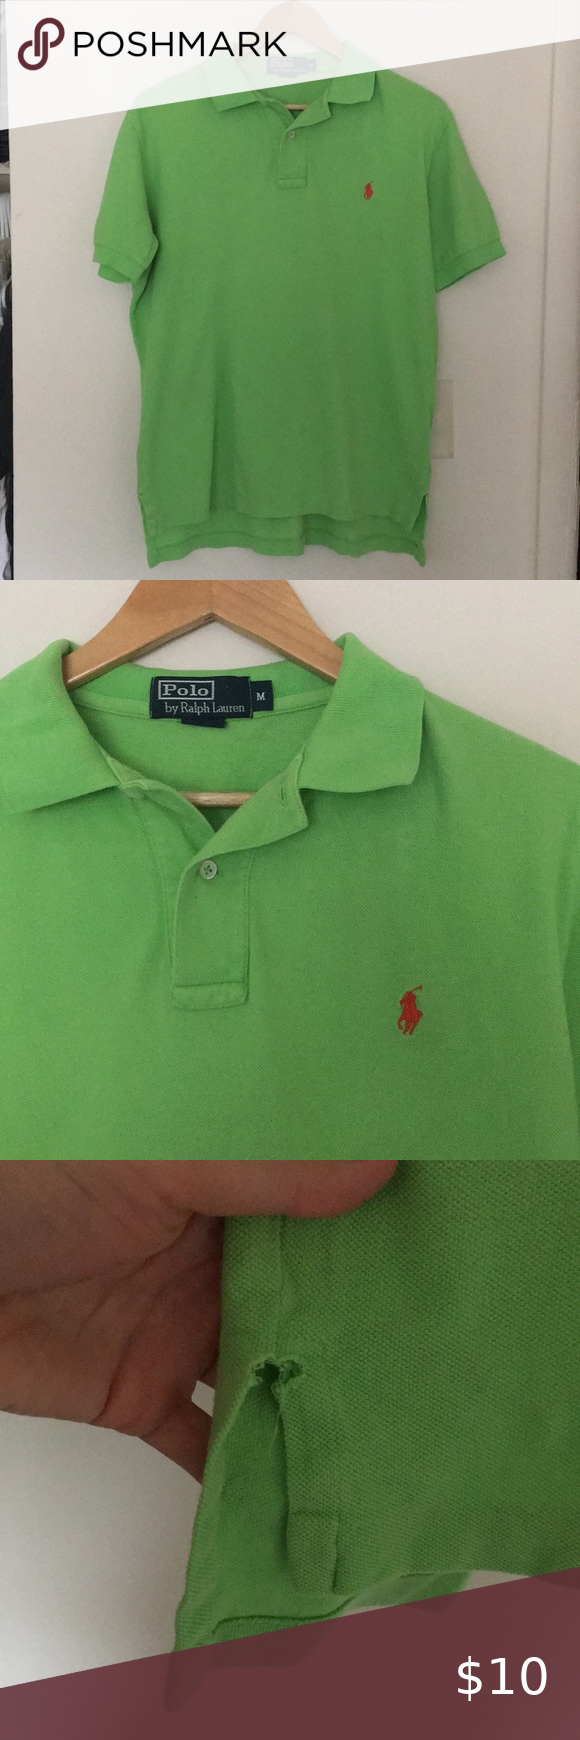 Polo By Ralph Lauren Polo Shirt Lime Green Polo Shirt Perfect Condition Aside From Slight Pulling Polo Ralph Lauren Ralph Lauren Polo Shirts Green Polo Shirts